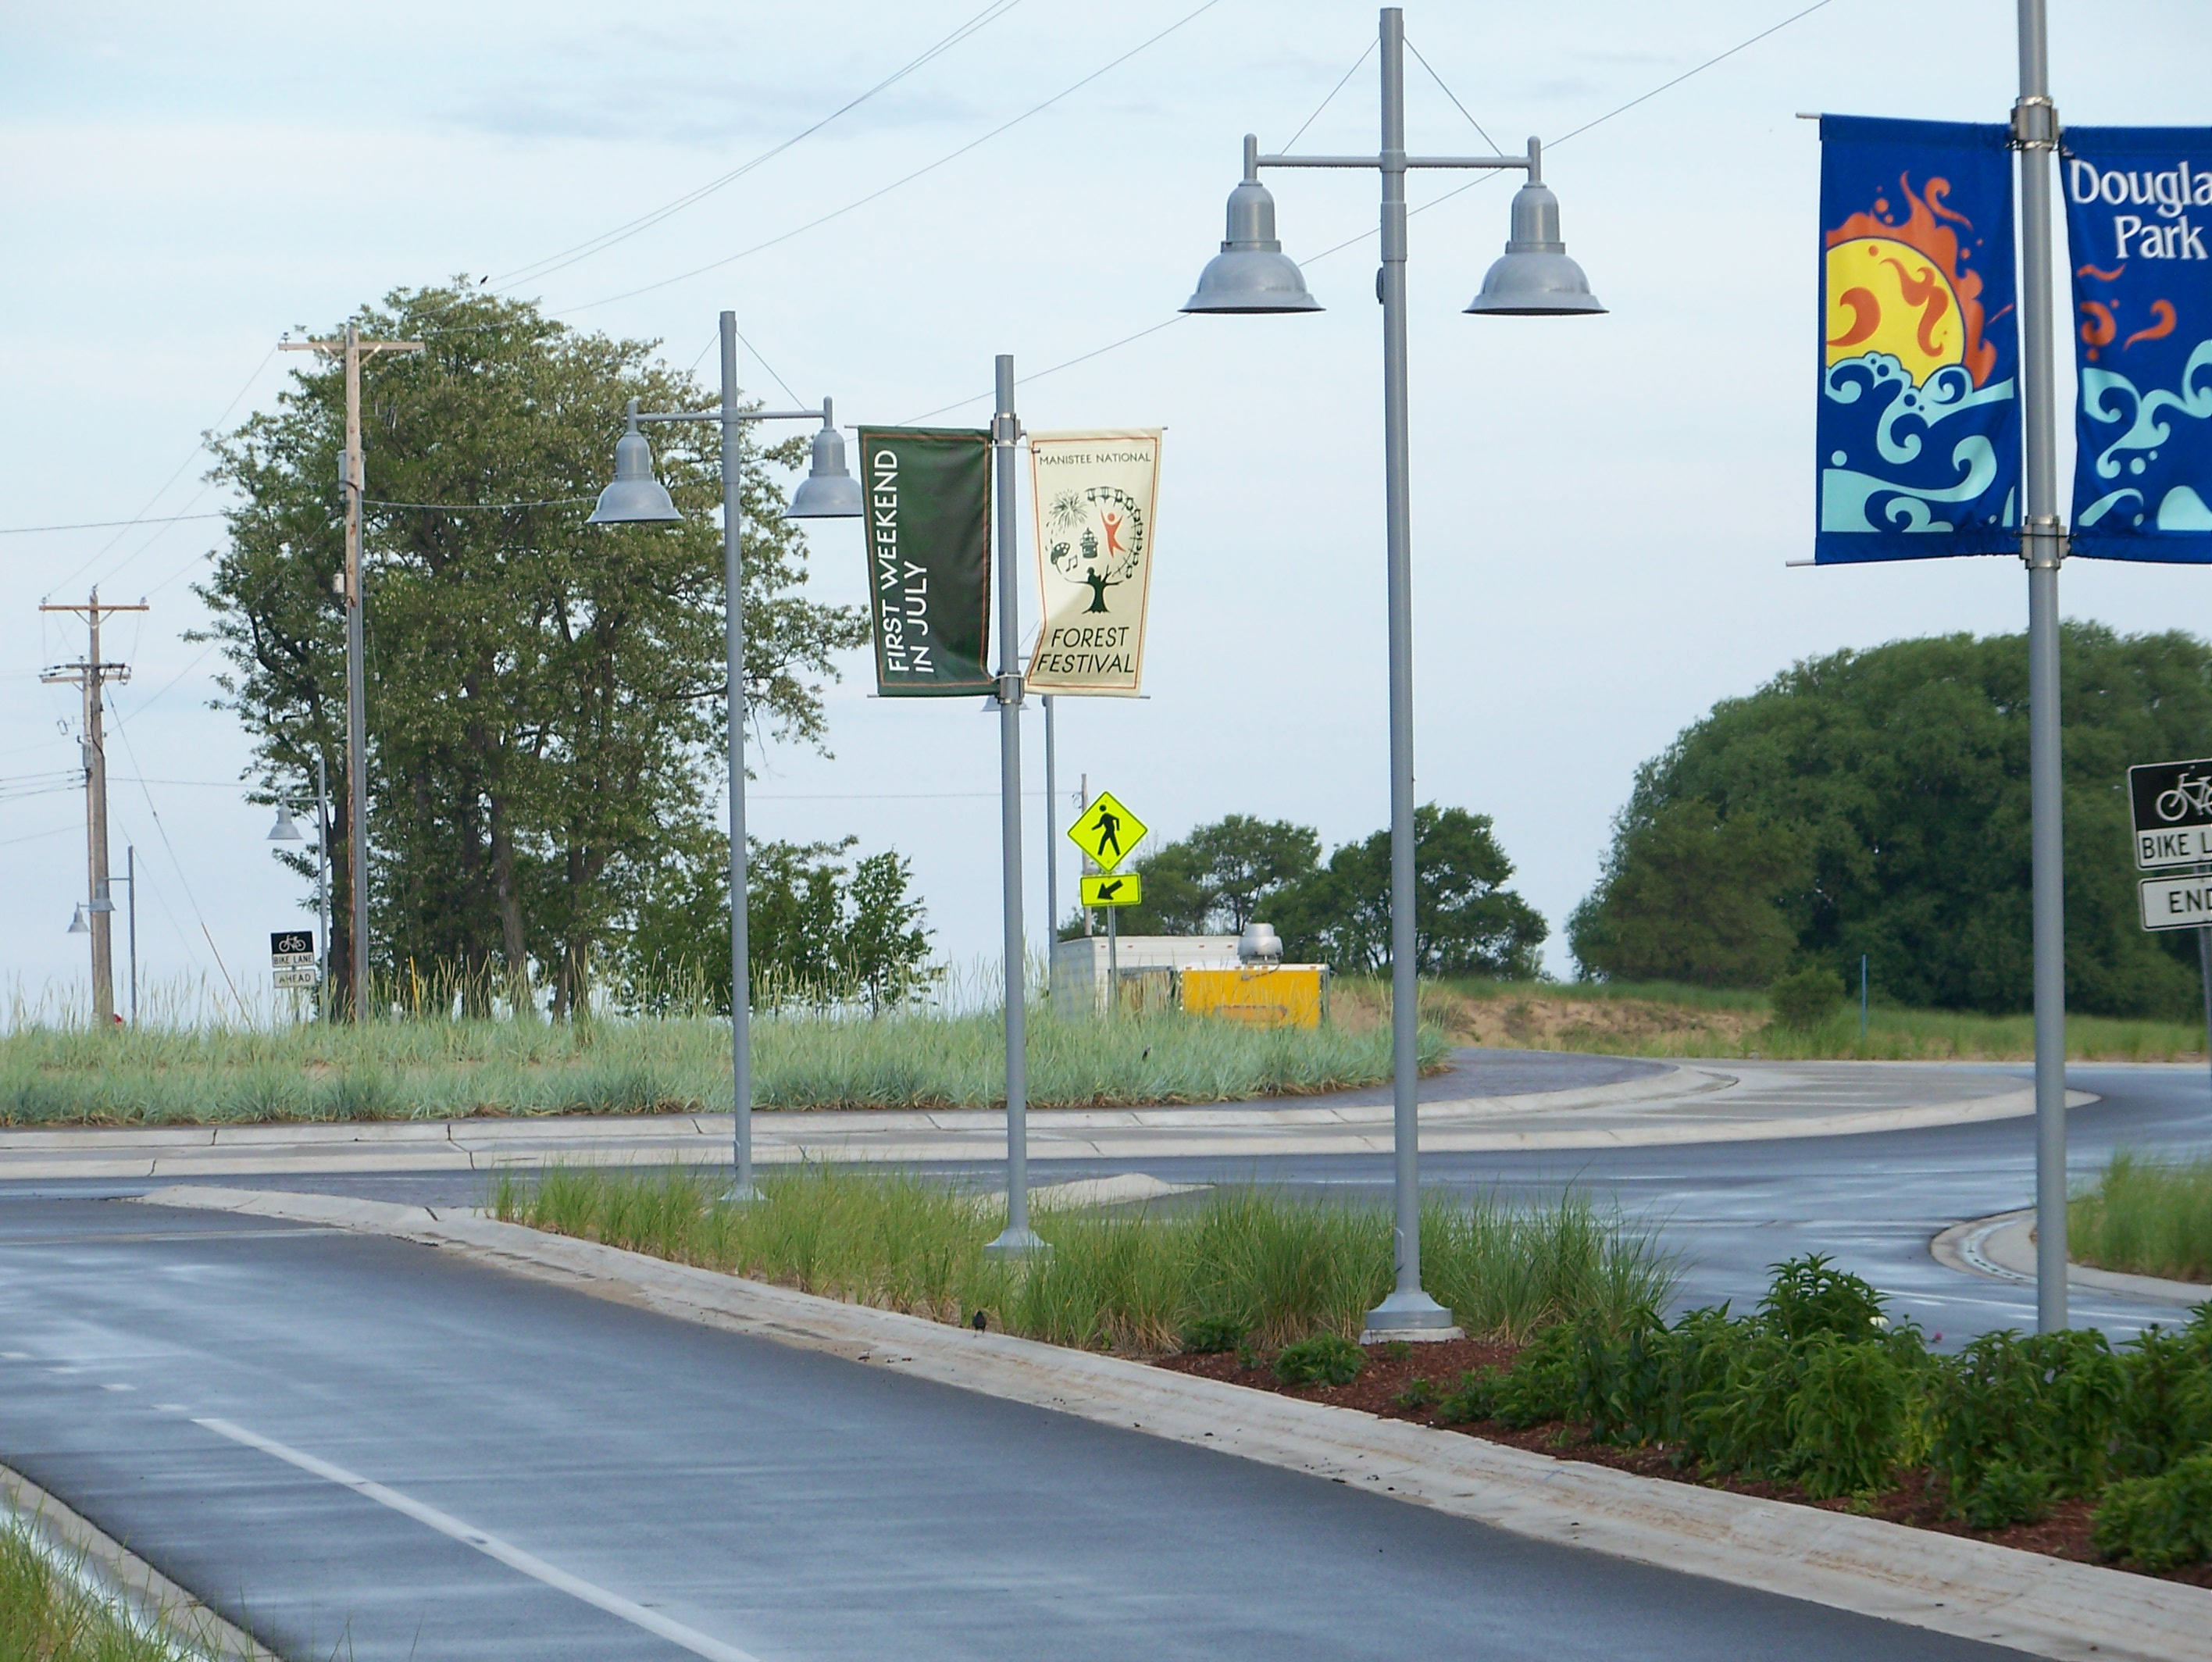 The entrance to Douglas park has a roundabout that is accessed from First Street where there is a landscaped boulevard that includes banners, lights, sidewalks and a bike lane